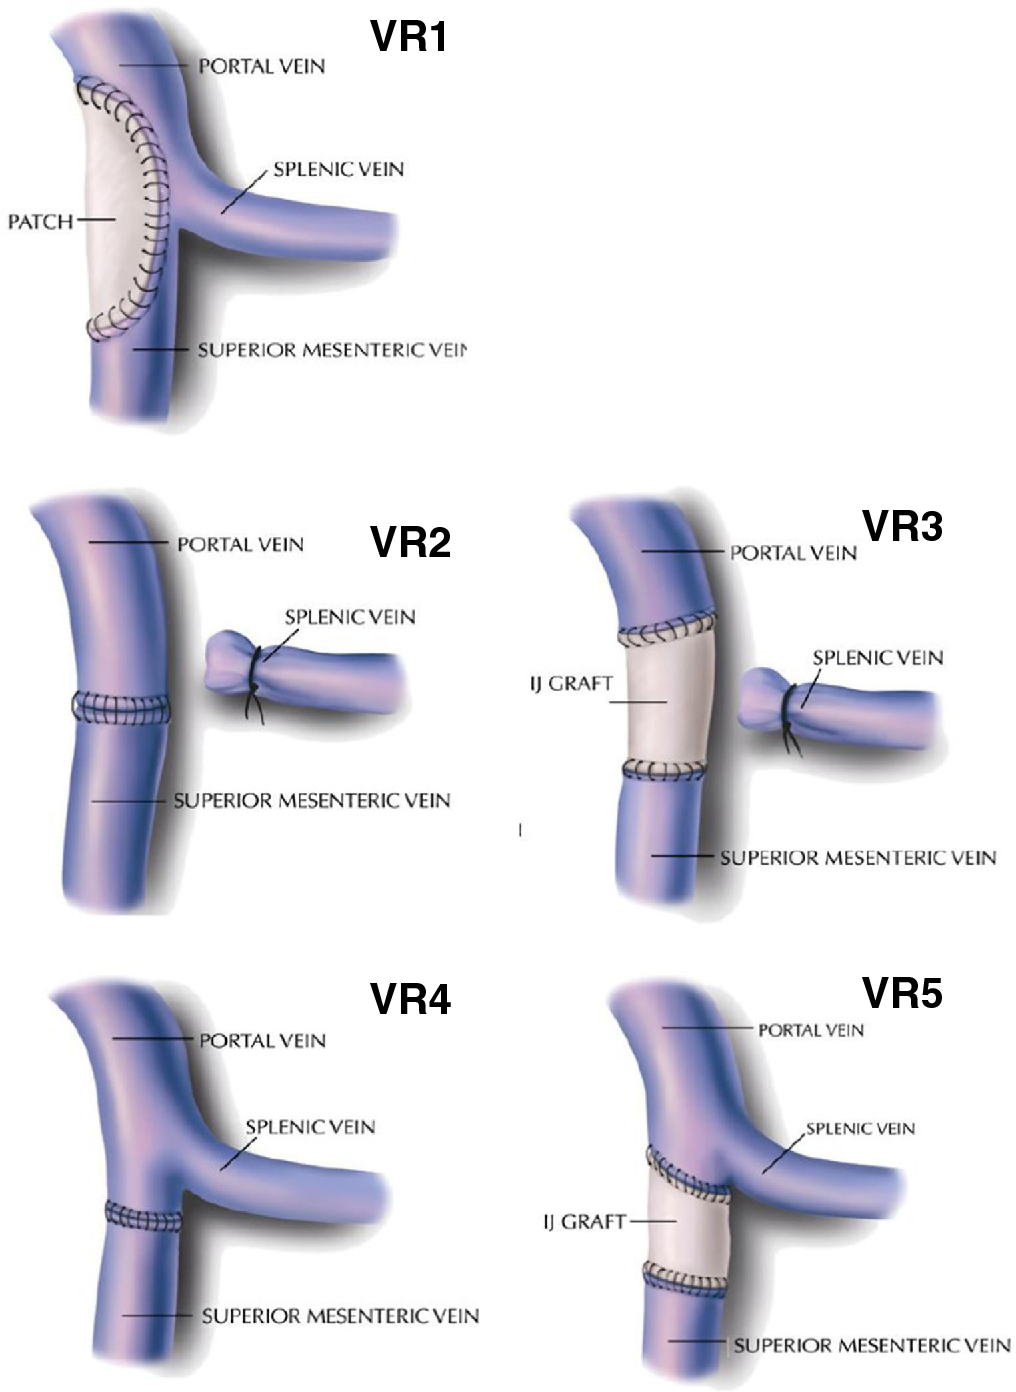 Portal Vein Anatomy Picture Images - human body anatomy